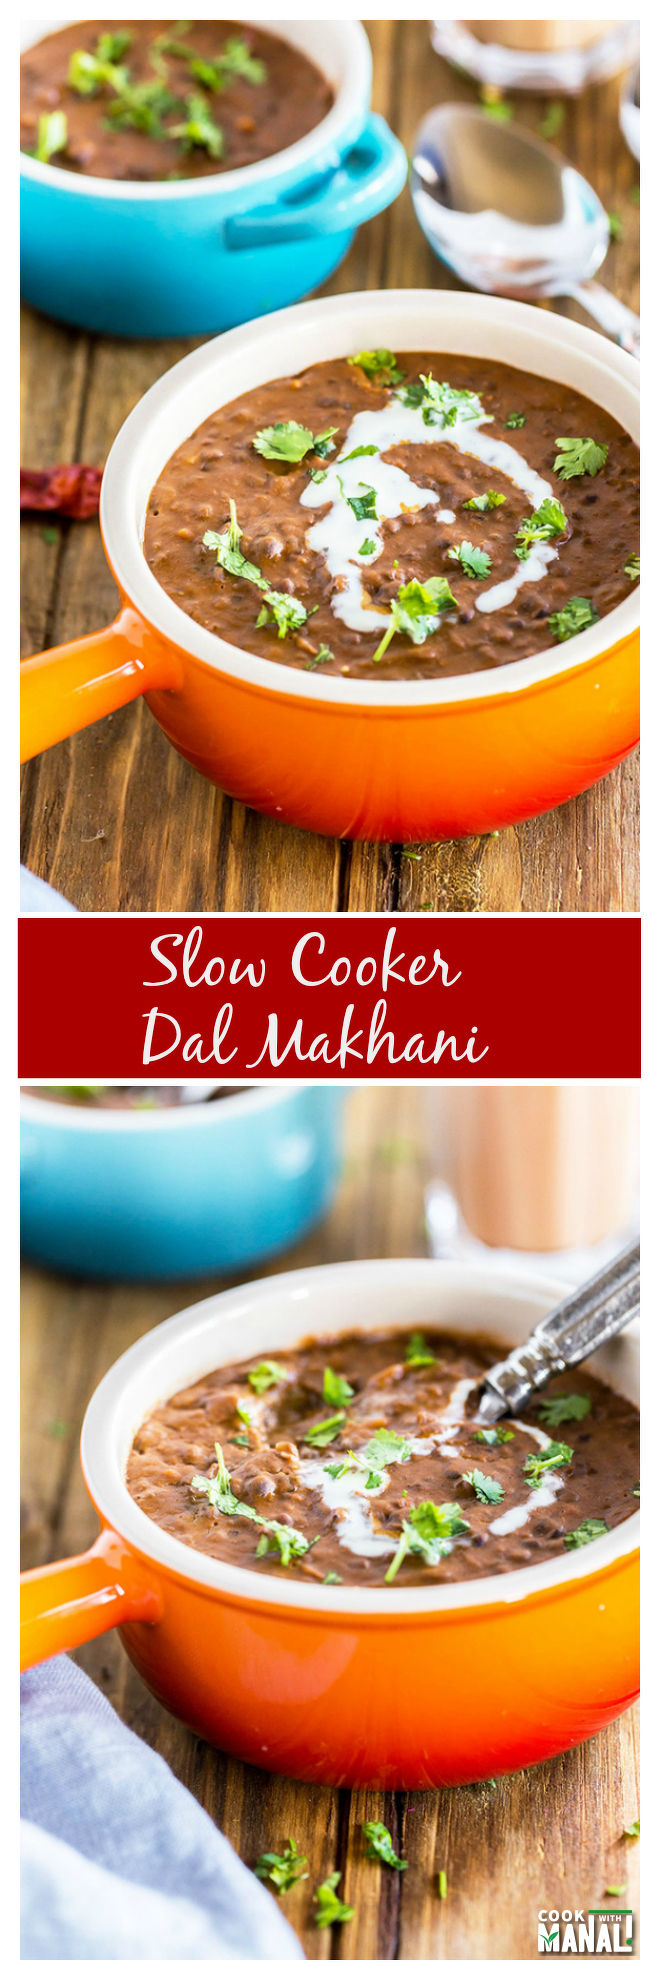 slow-cooker-dal-makhani-collage